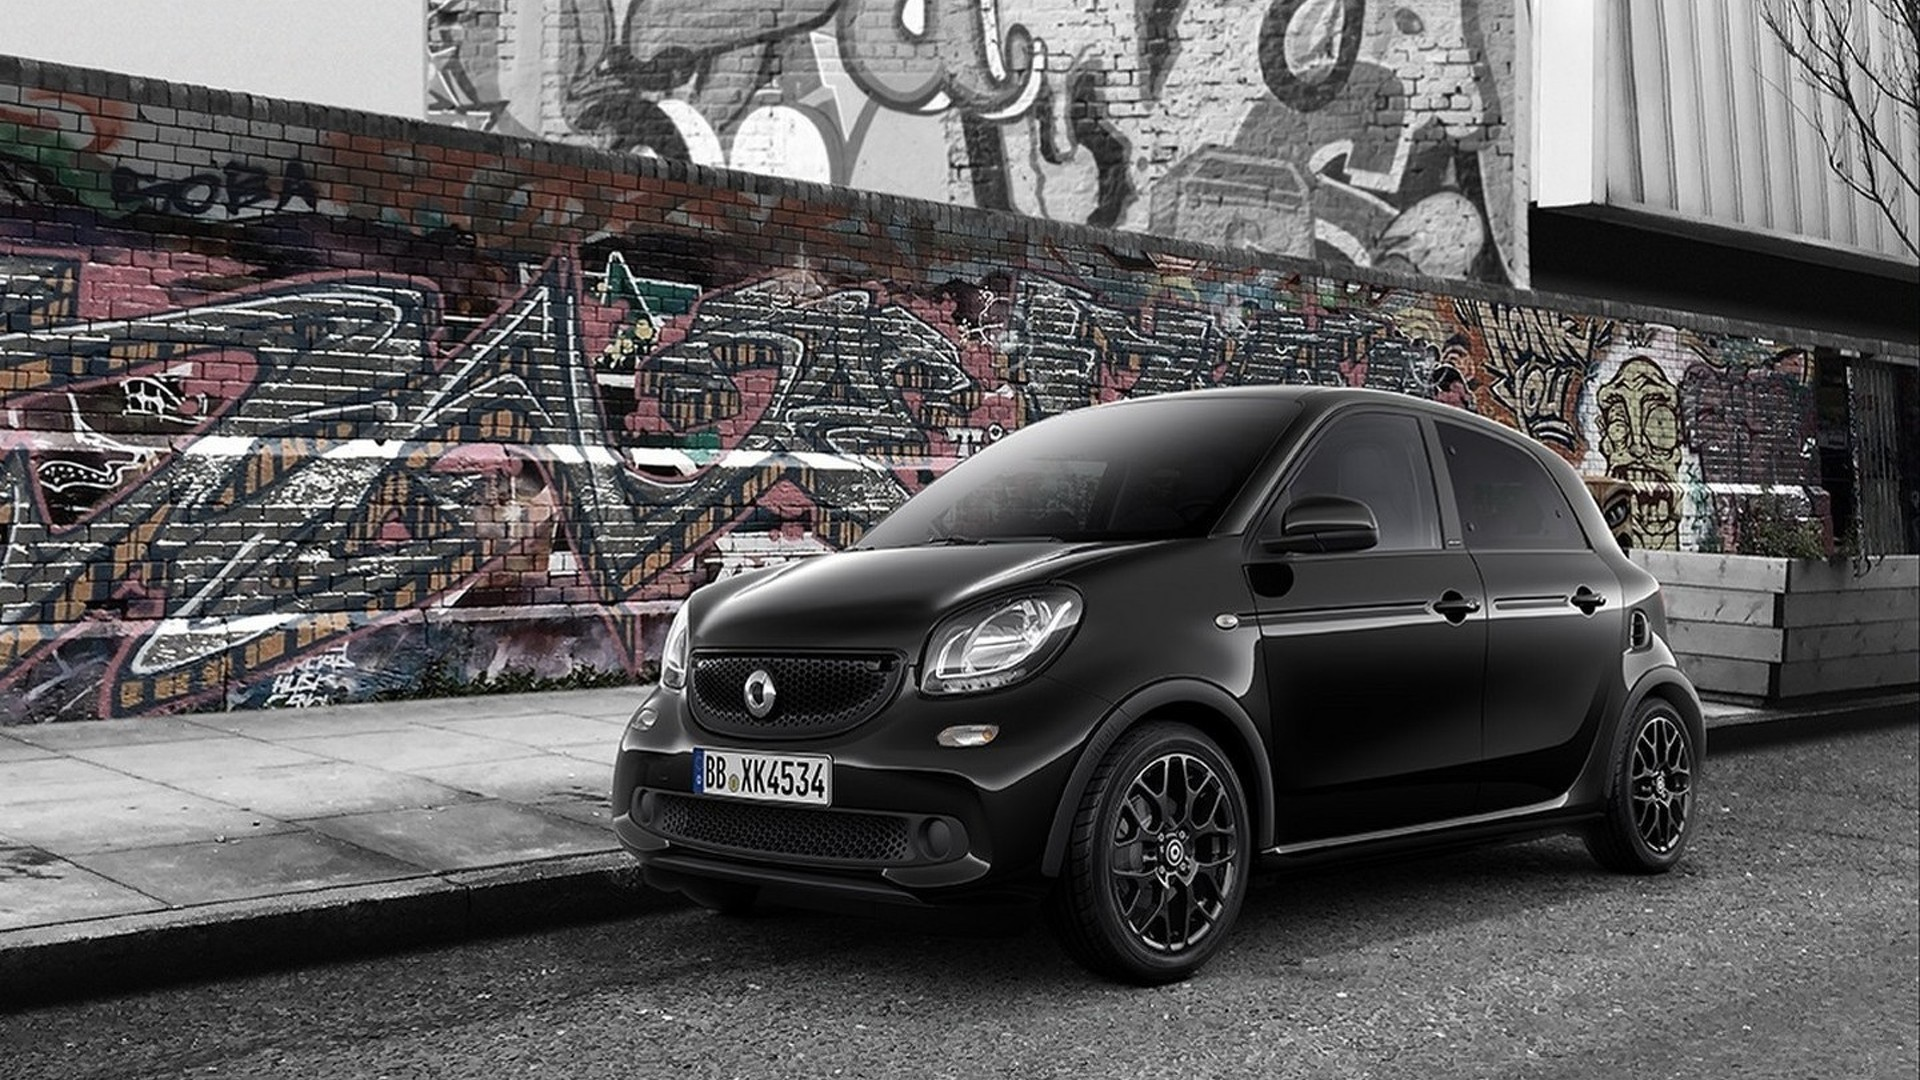 Smart ForTwo, ForFour go black and white in UK